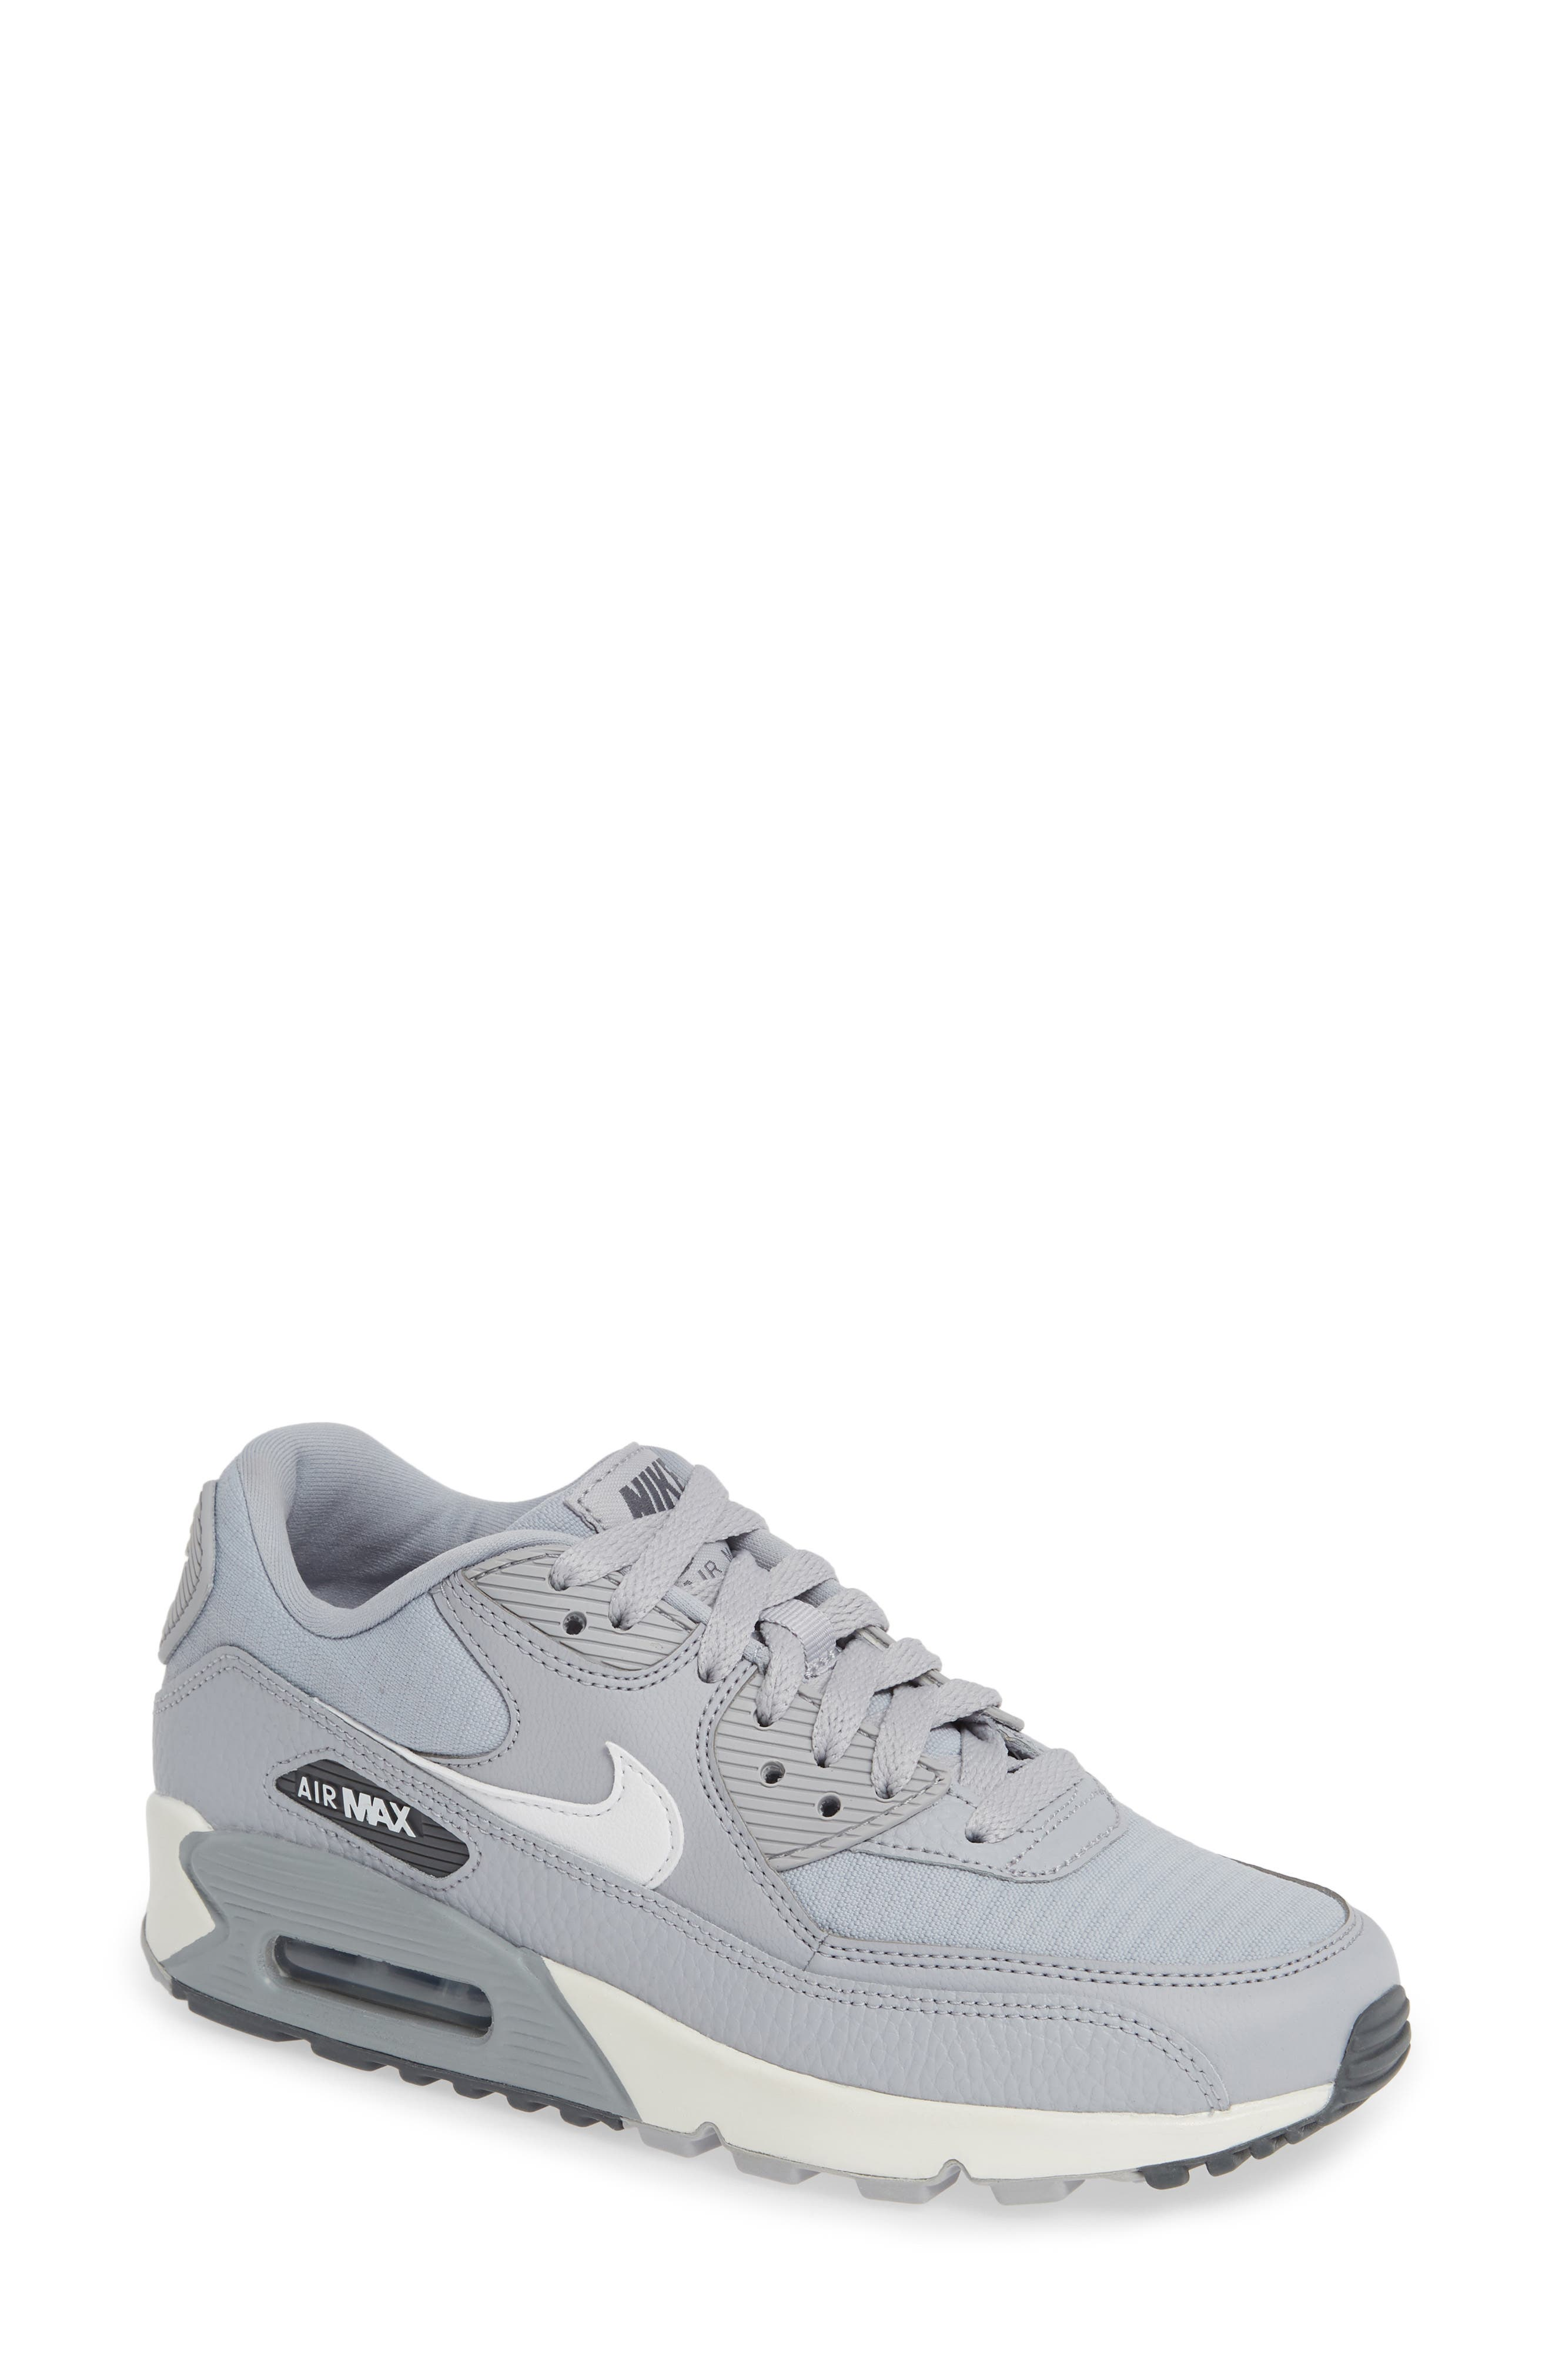 best loved d2504 16ca1 Nike Air Max Shoes   Nordstrom